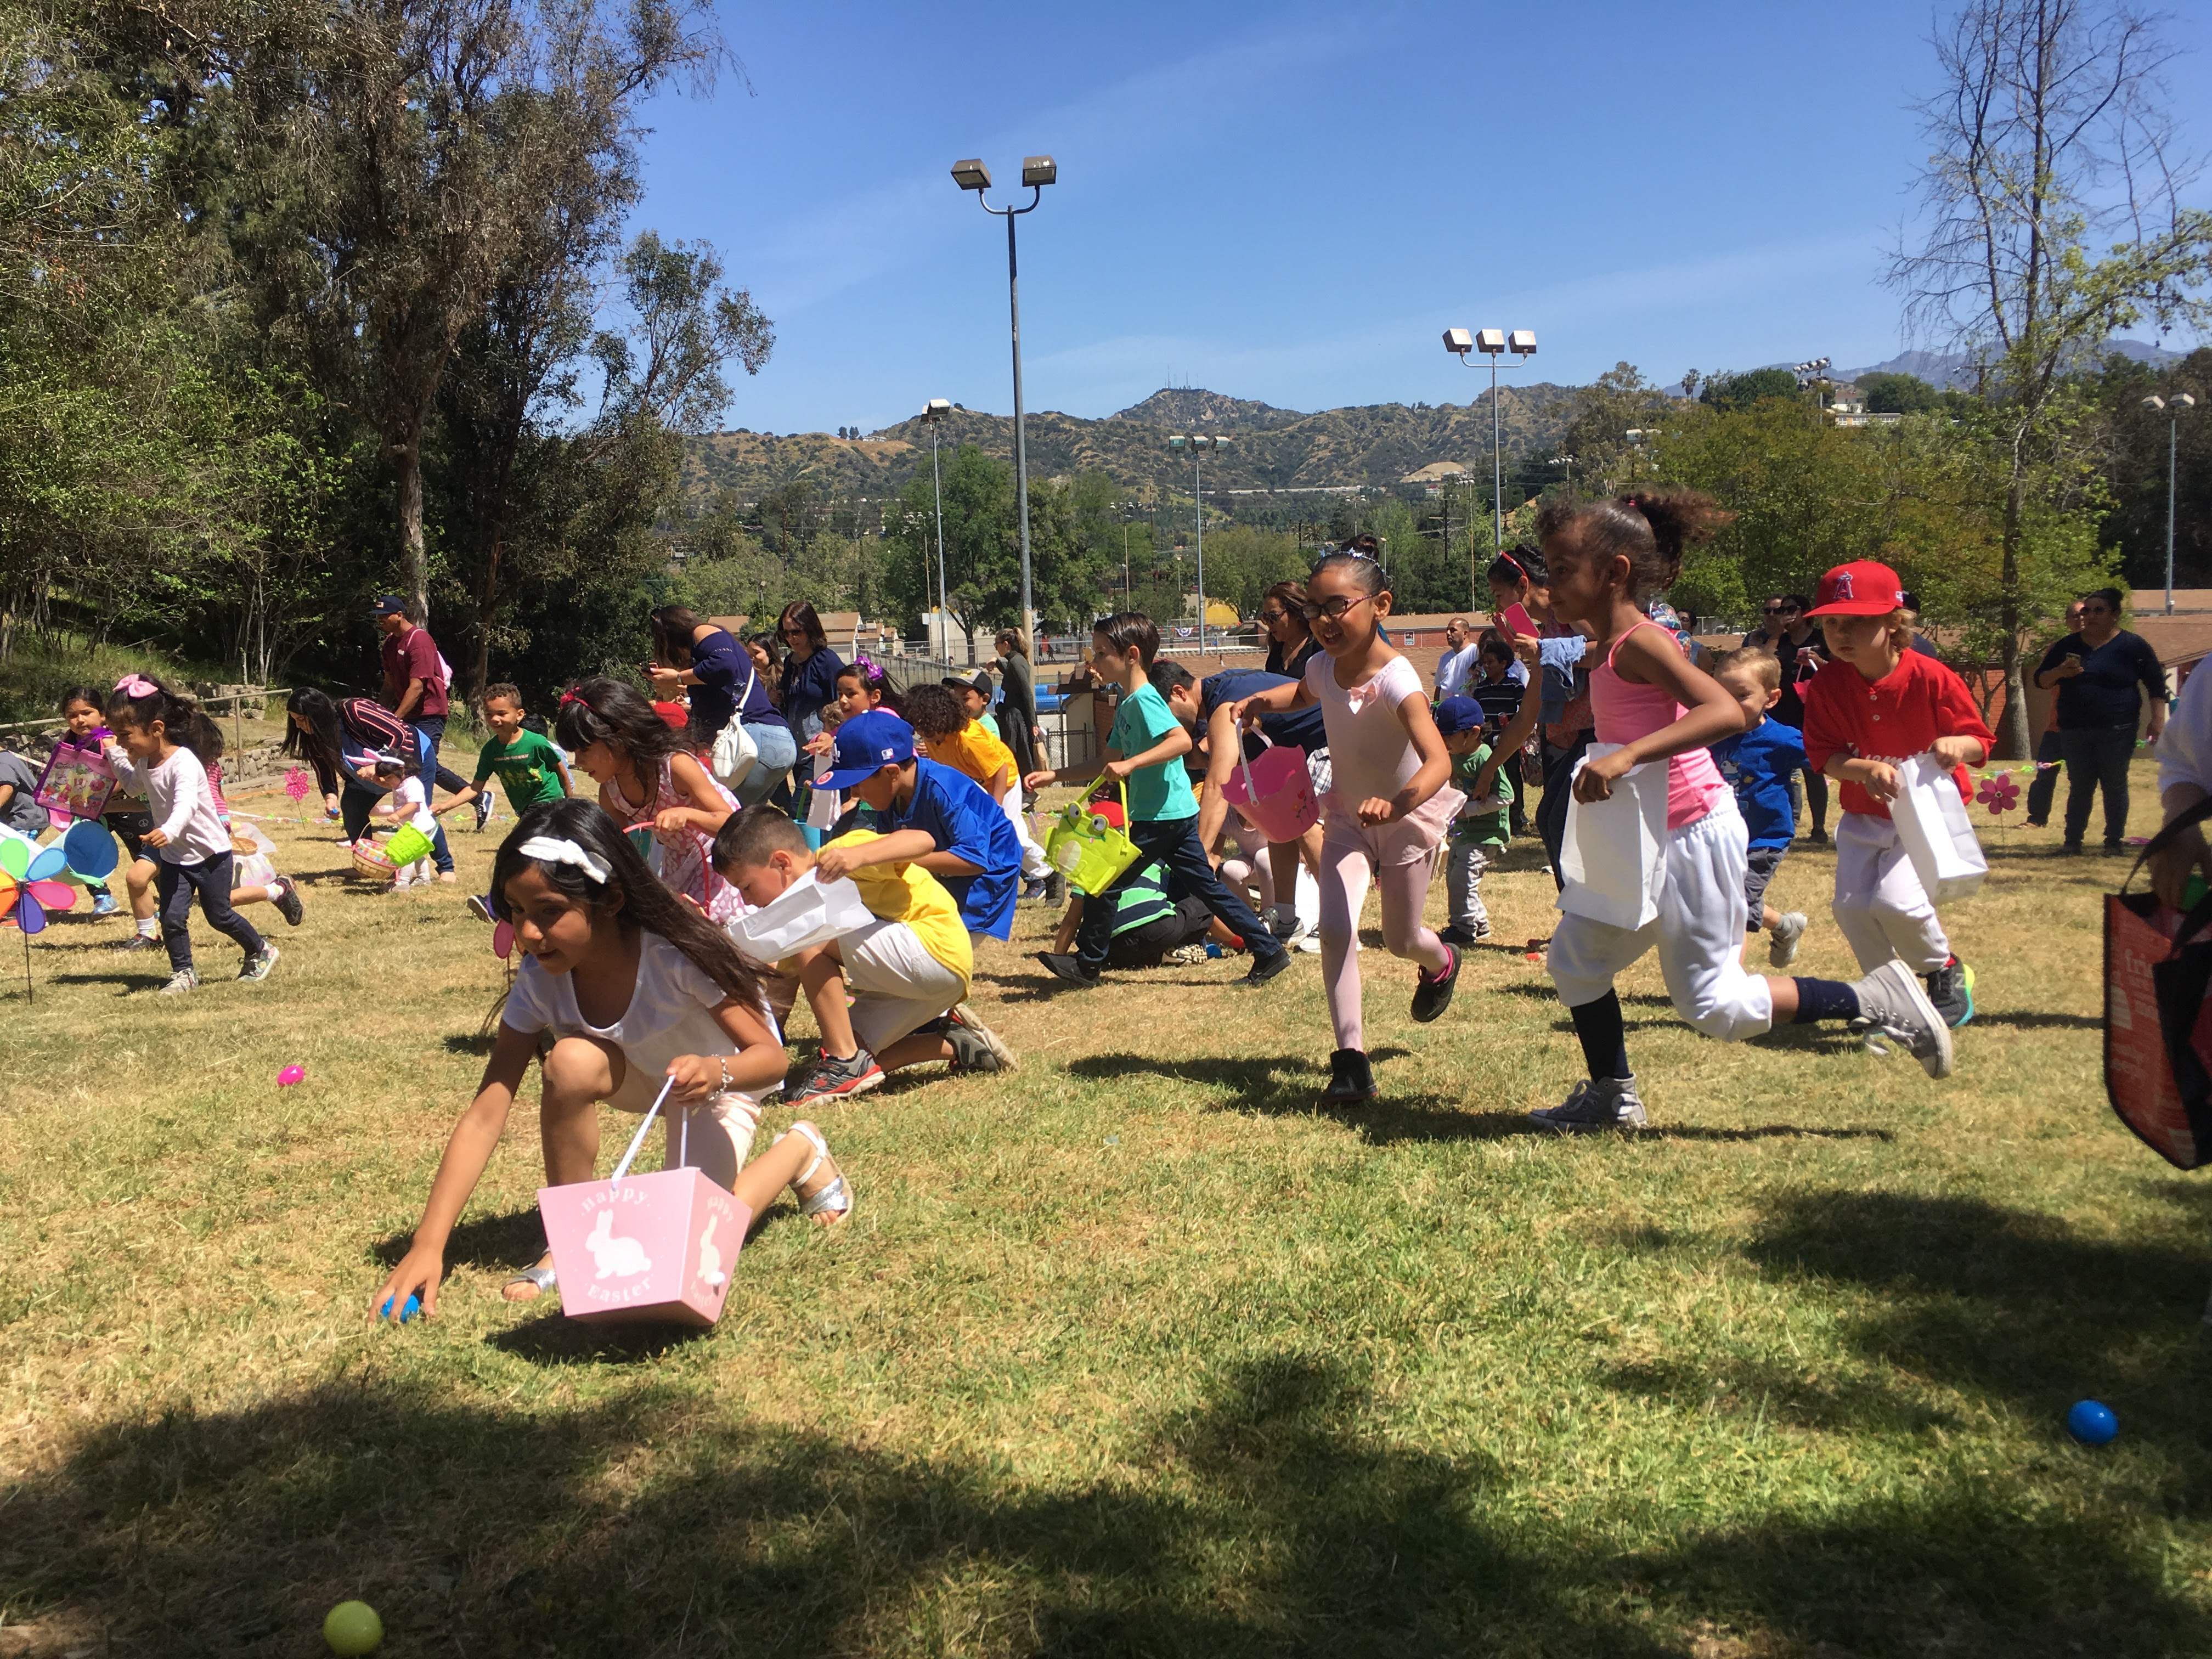 Eagle_Rock_Rec_Center_Opening_Day.jpg